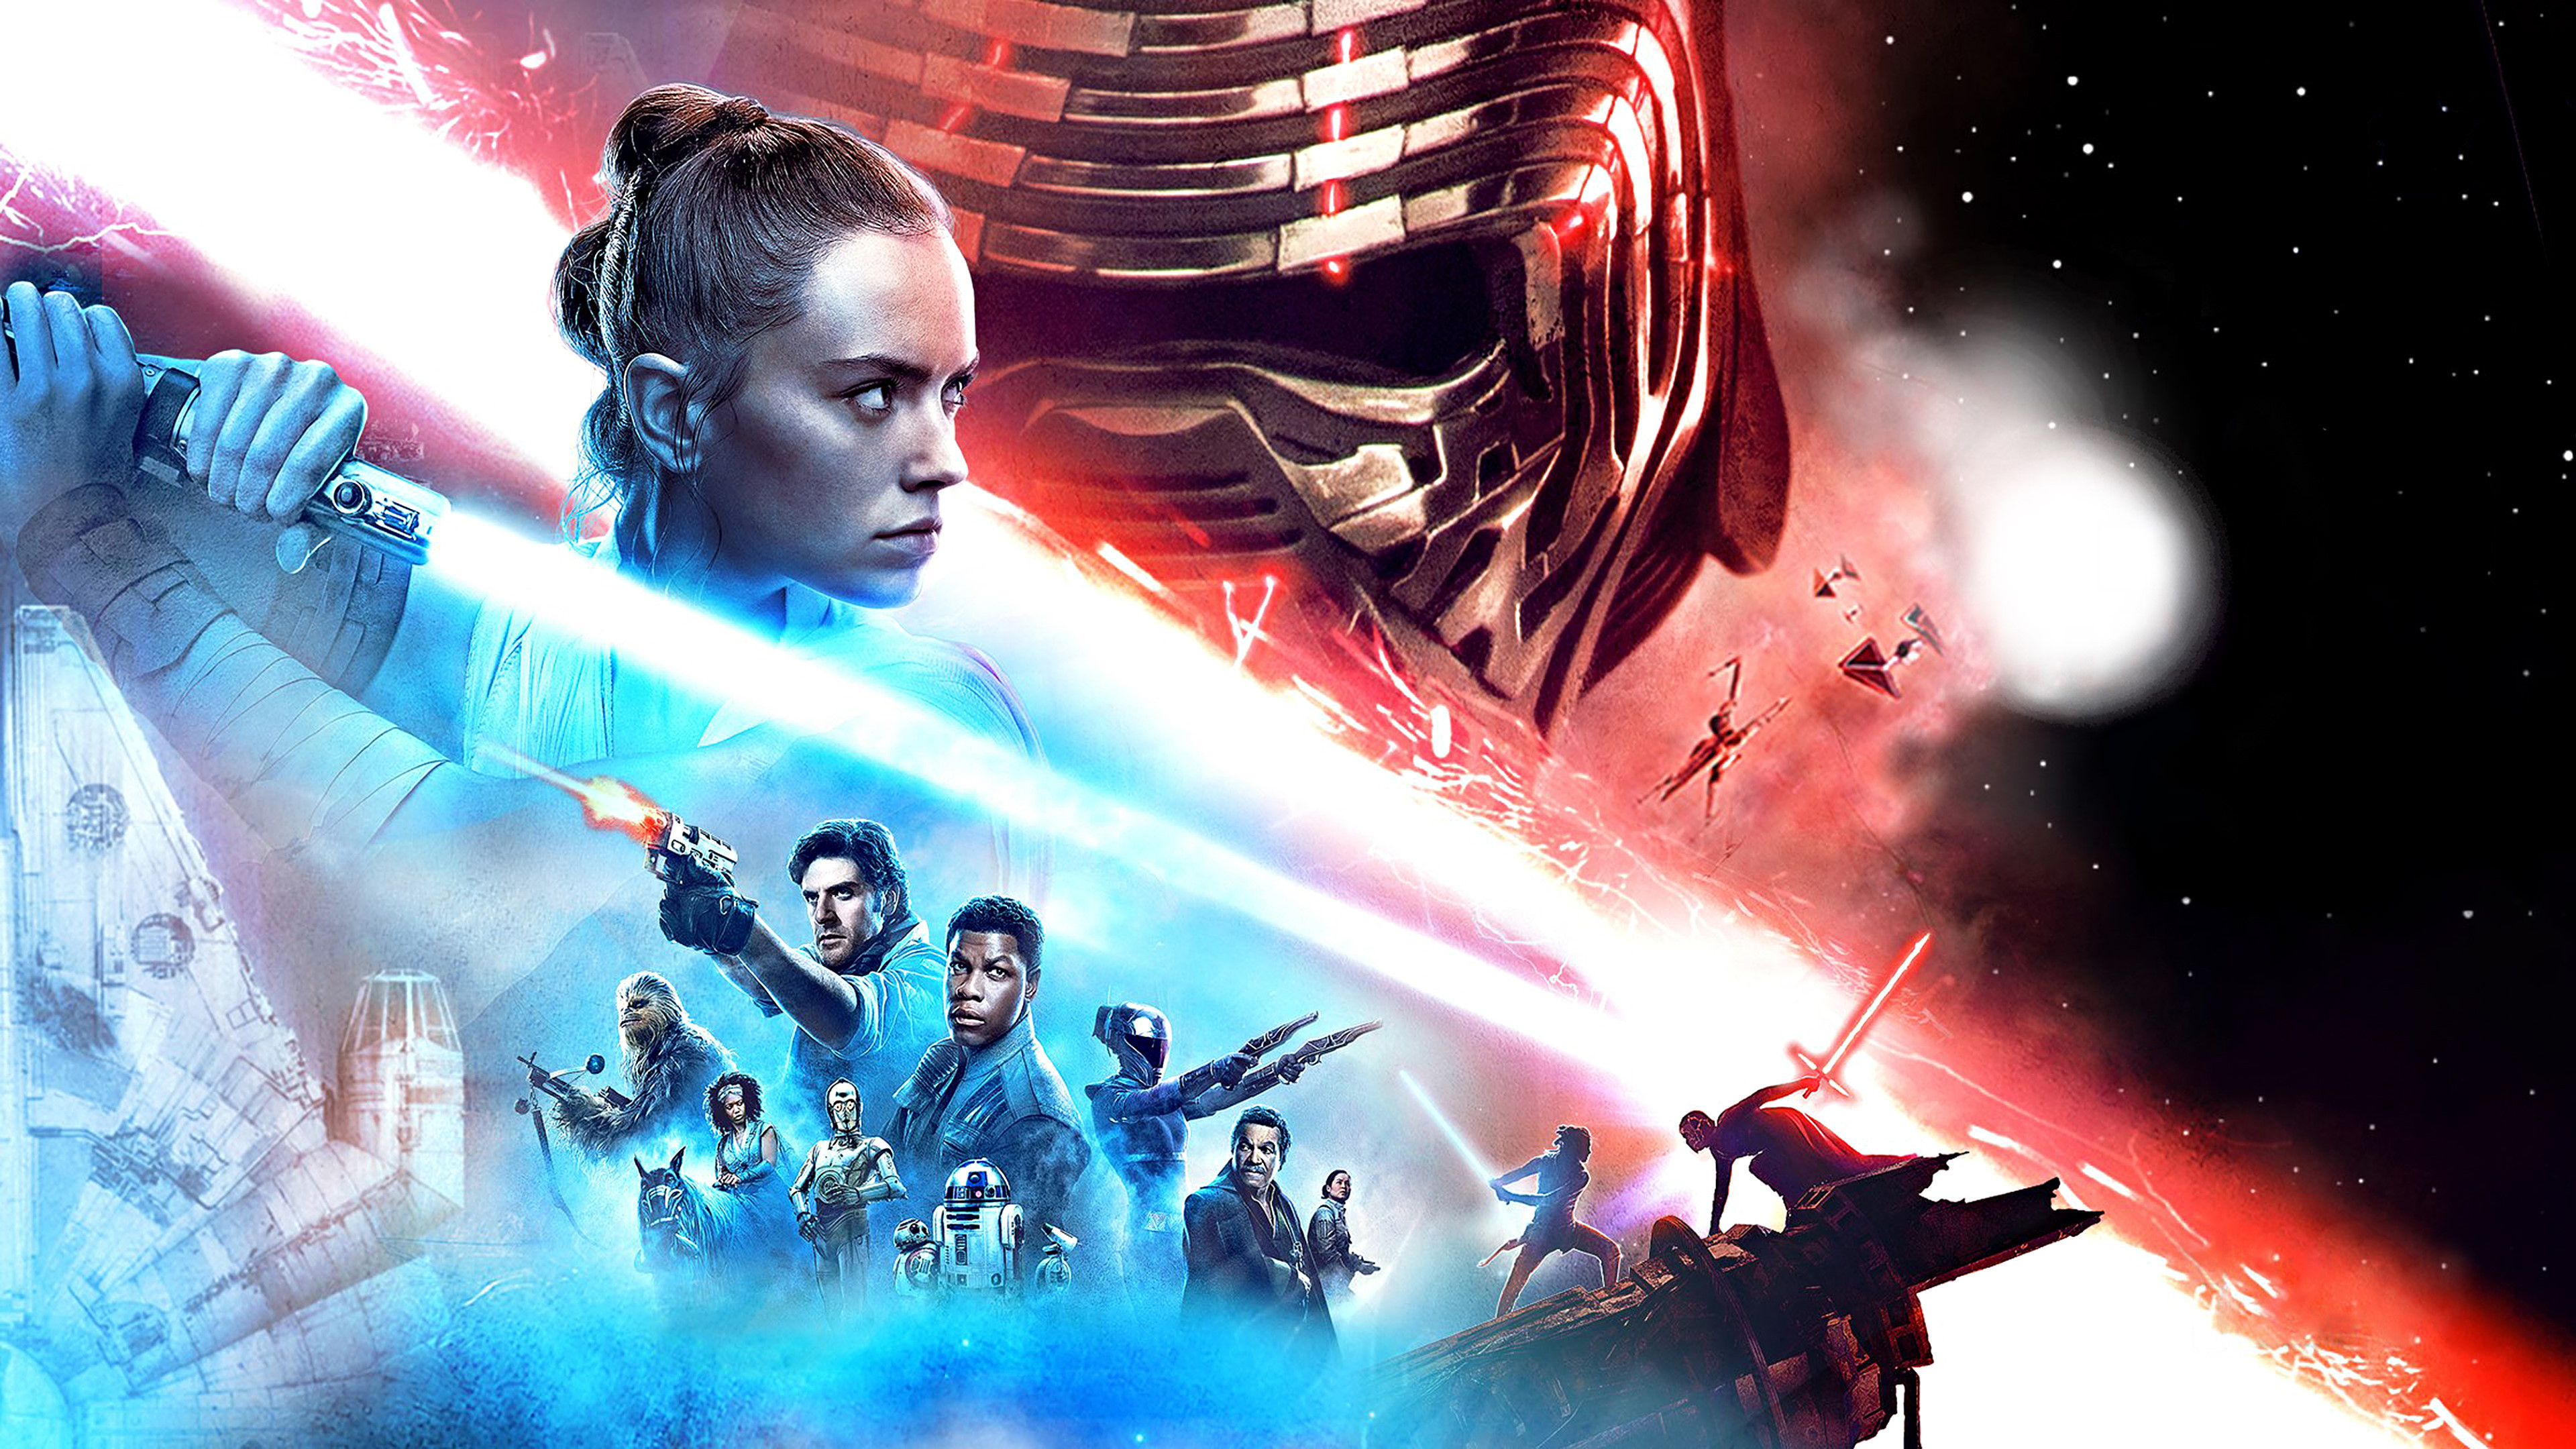 Download wallpaper: Episode IX Star Wars: The Rise of